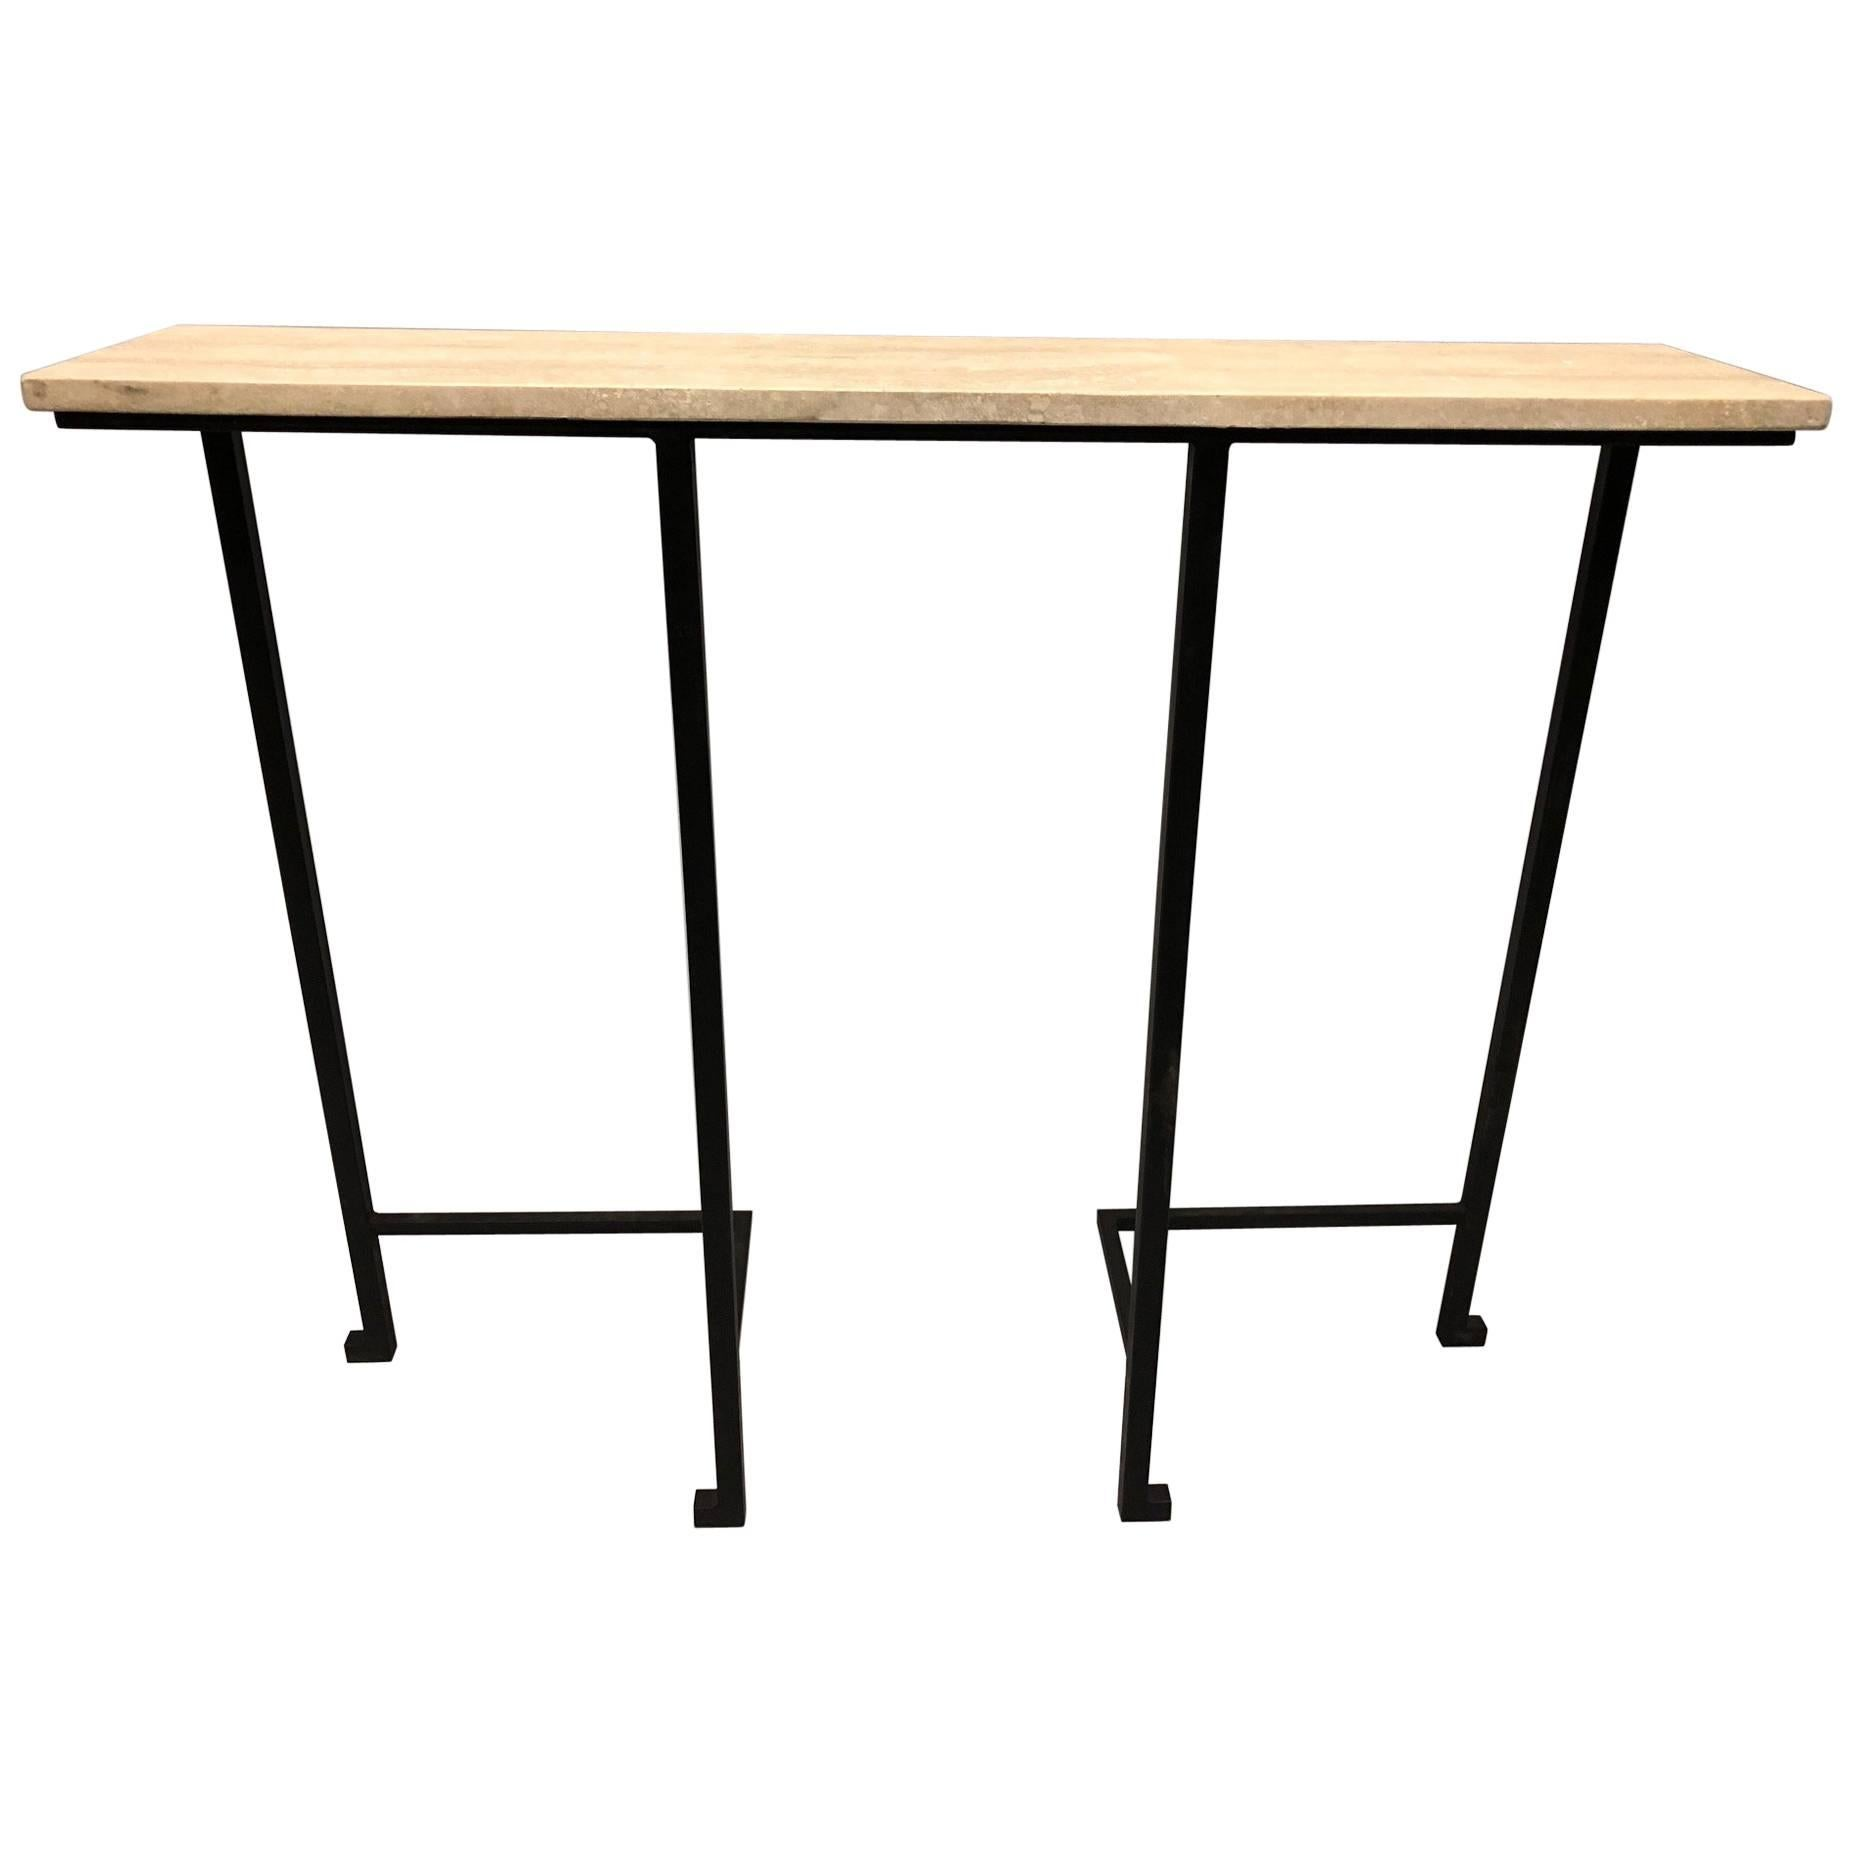 2 French Mid-Century Modern Wrought Iron & Stone Consoles, Attr. Marc Duplantier